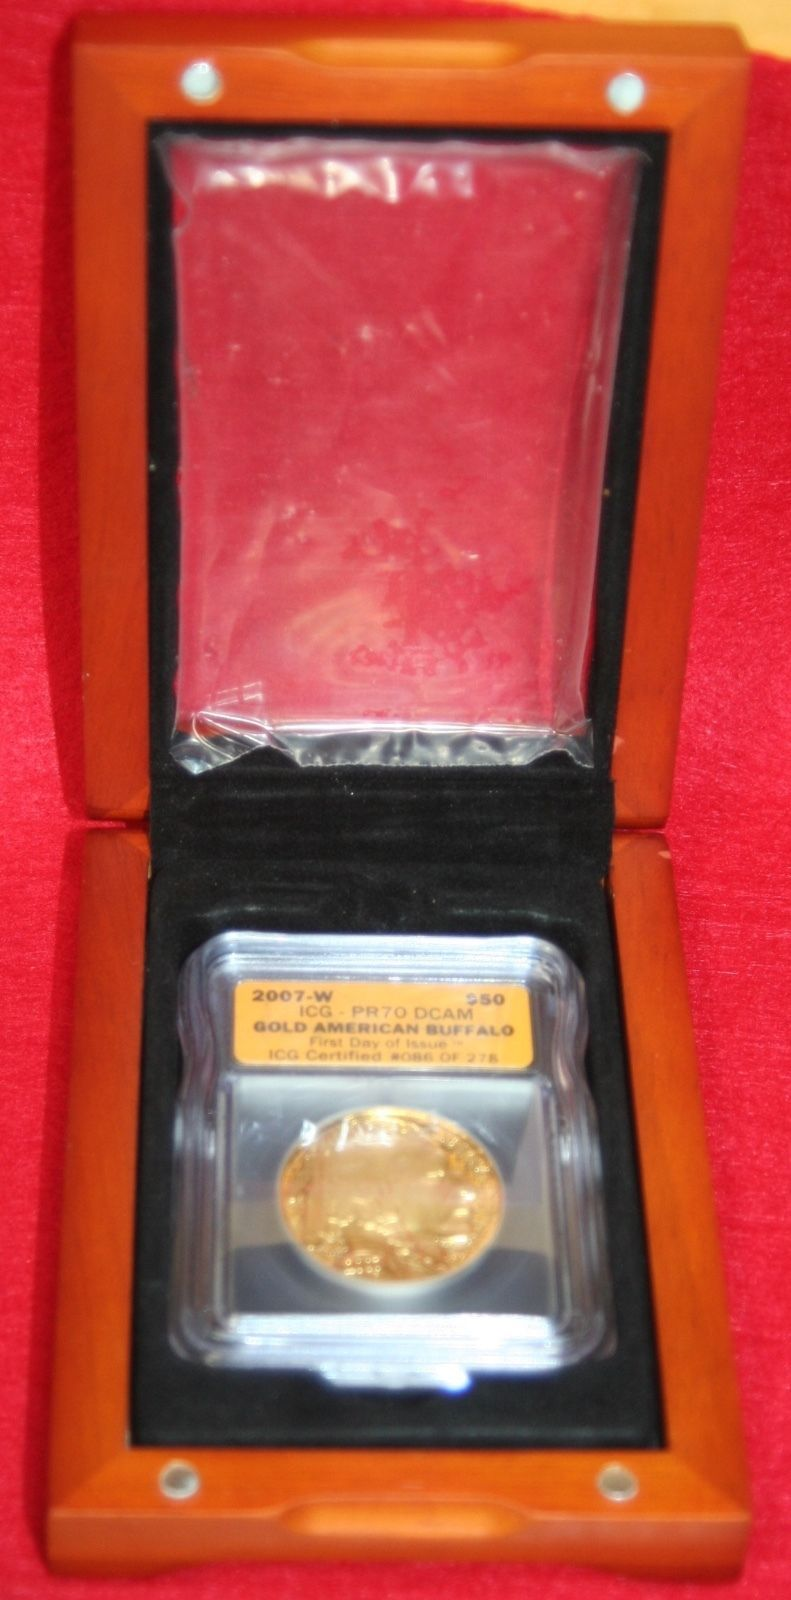 "#New post #2007-W $50 American Gold Buffalo 1oz  - ICG PR70 DCAM in Wooden Box  http://i.ebayimg.com/images/g/4DMAAOSww3tY5BI0/s-l1600.jpg      Item specifics   Seller Notes: ""Perfect Grade""      									 			Coin:   												American Buffalo  									 			Fineness:   												.9999    									 			Grade:   												PR70  									 			Country/Region of Manufacture:   												United States    									... https://www.shopnet.one/2007-w-50-american-gold"